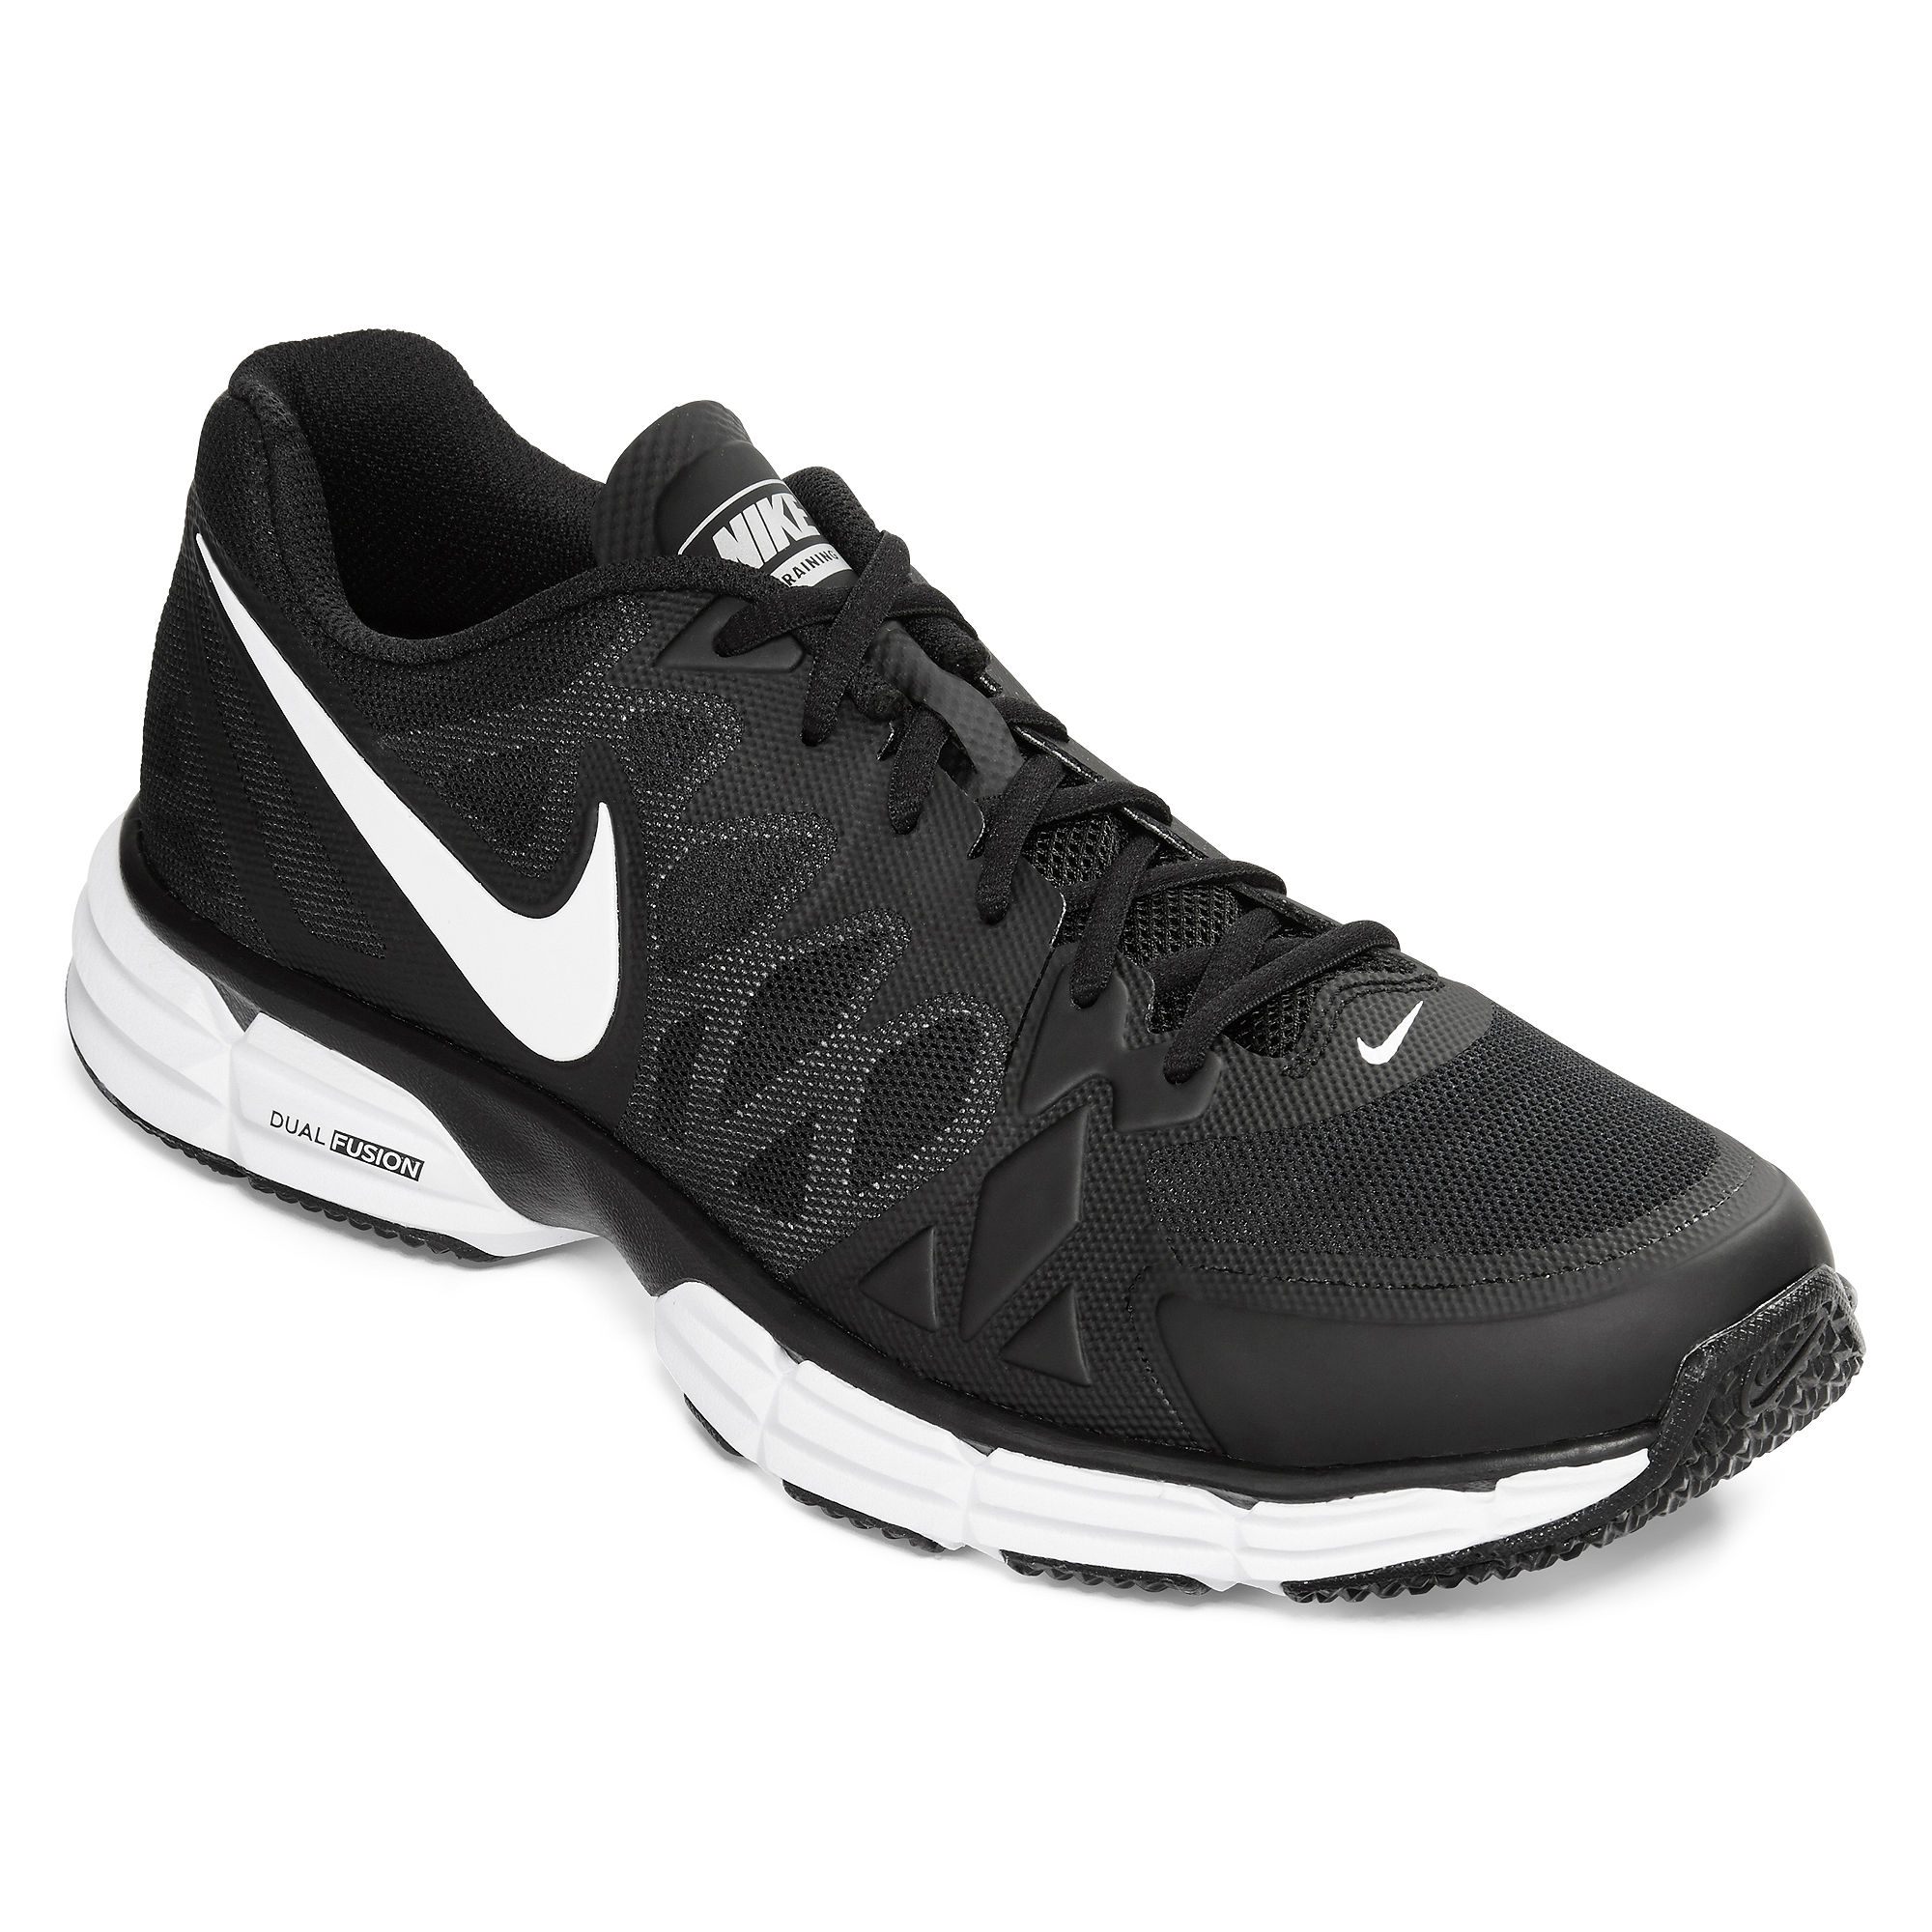 Nike Shoes Dual Fusion Price